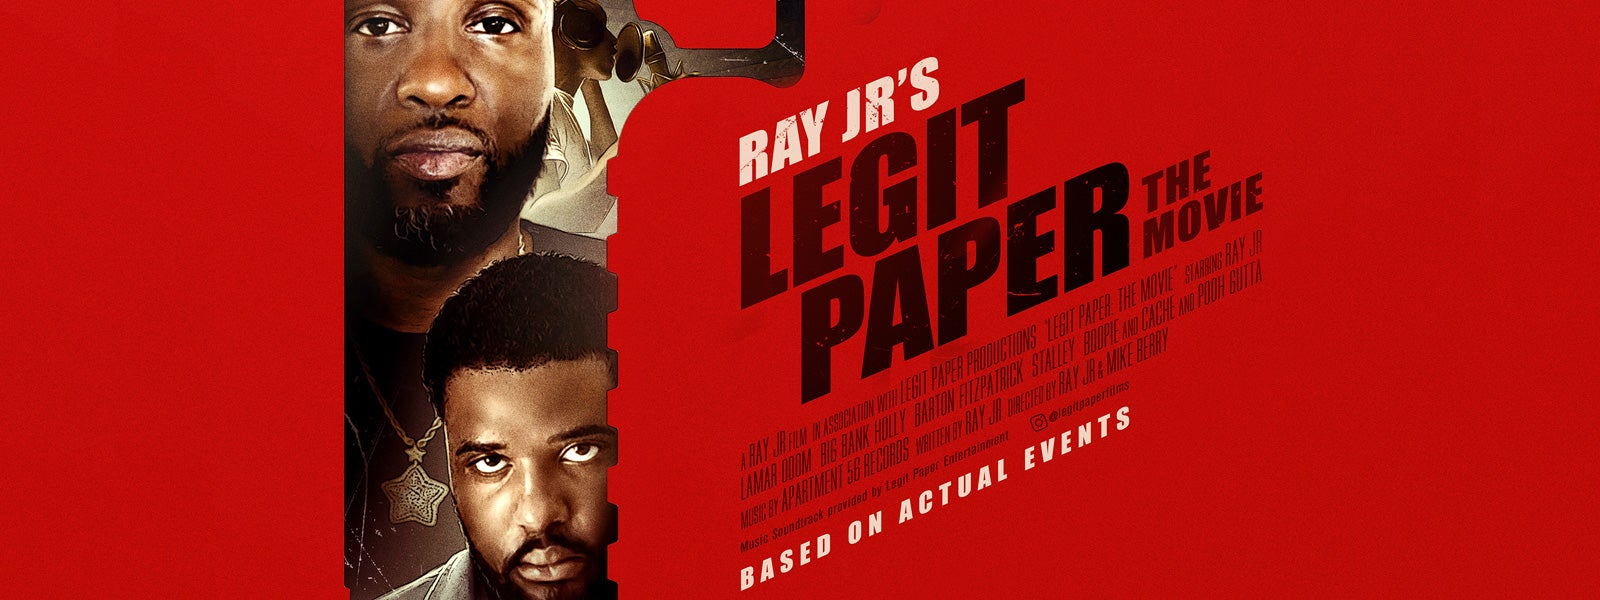 Ray Jr's Legit Paper - The Movie (Rated R)